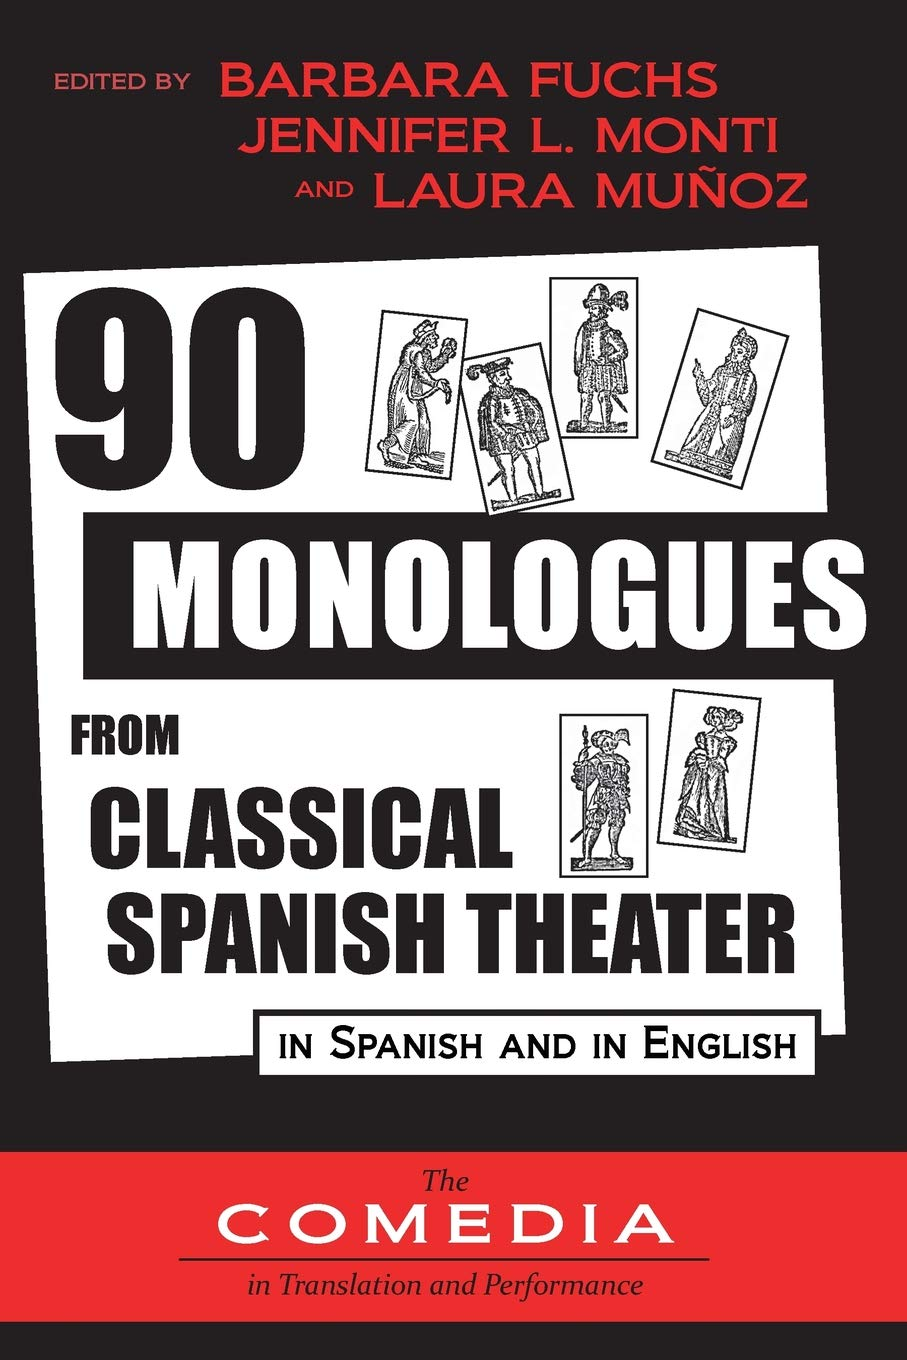 90 Monologues From Classical Spanish Theater  In Spanish And English  UCLA Center For 17th  And 18th Century Studies  The Comedia In Translation And Performance Band 1